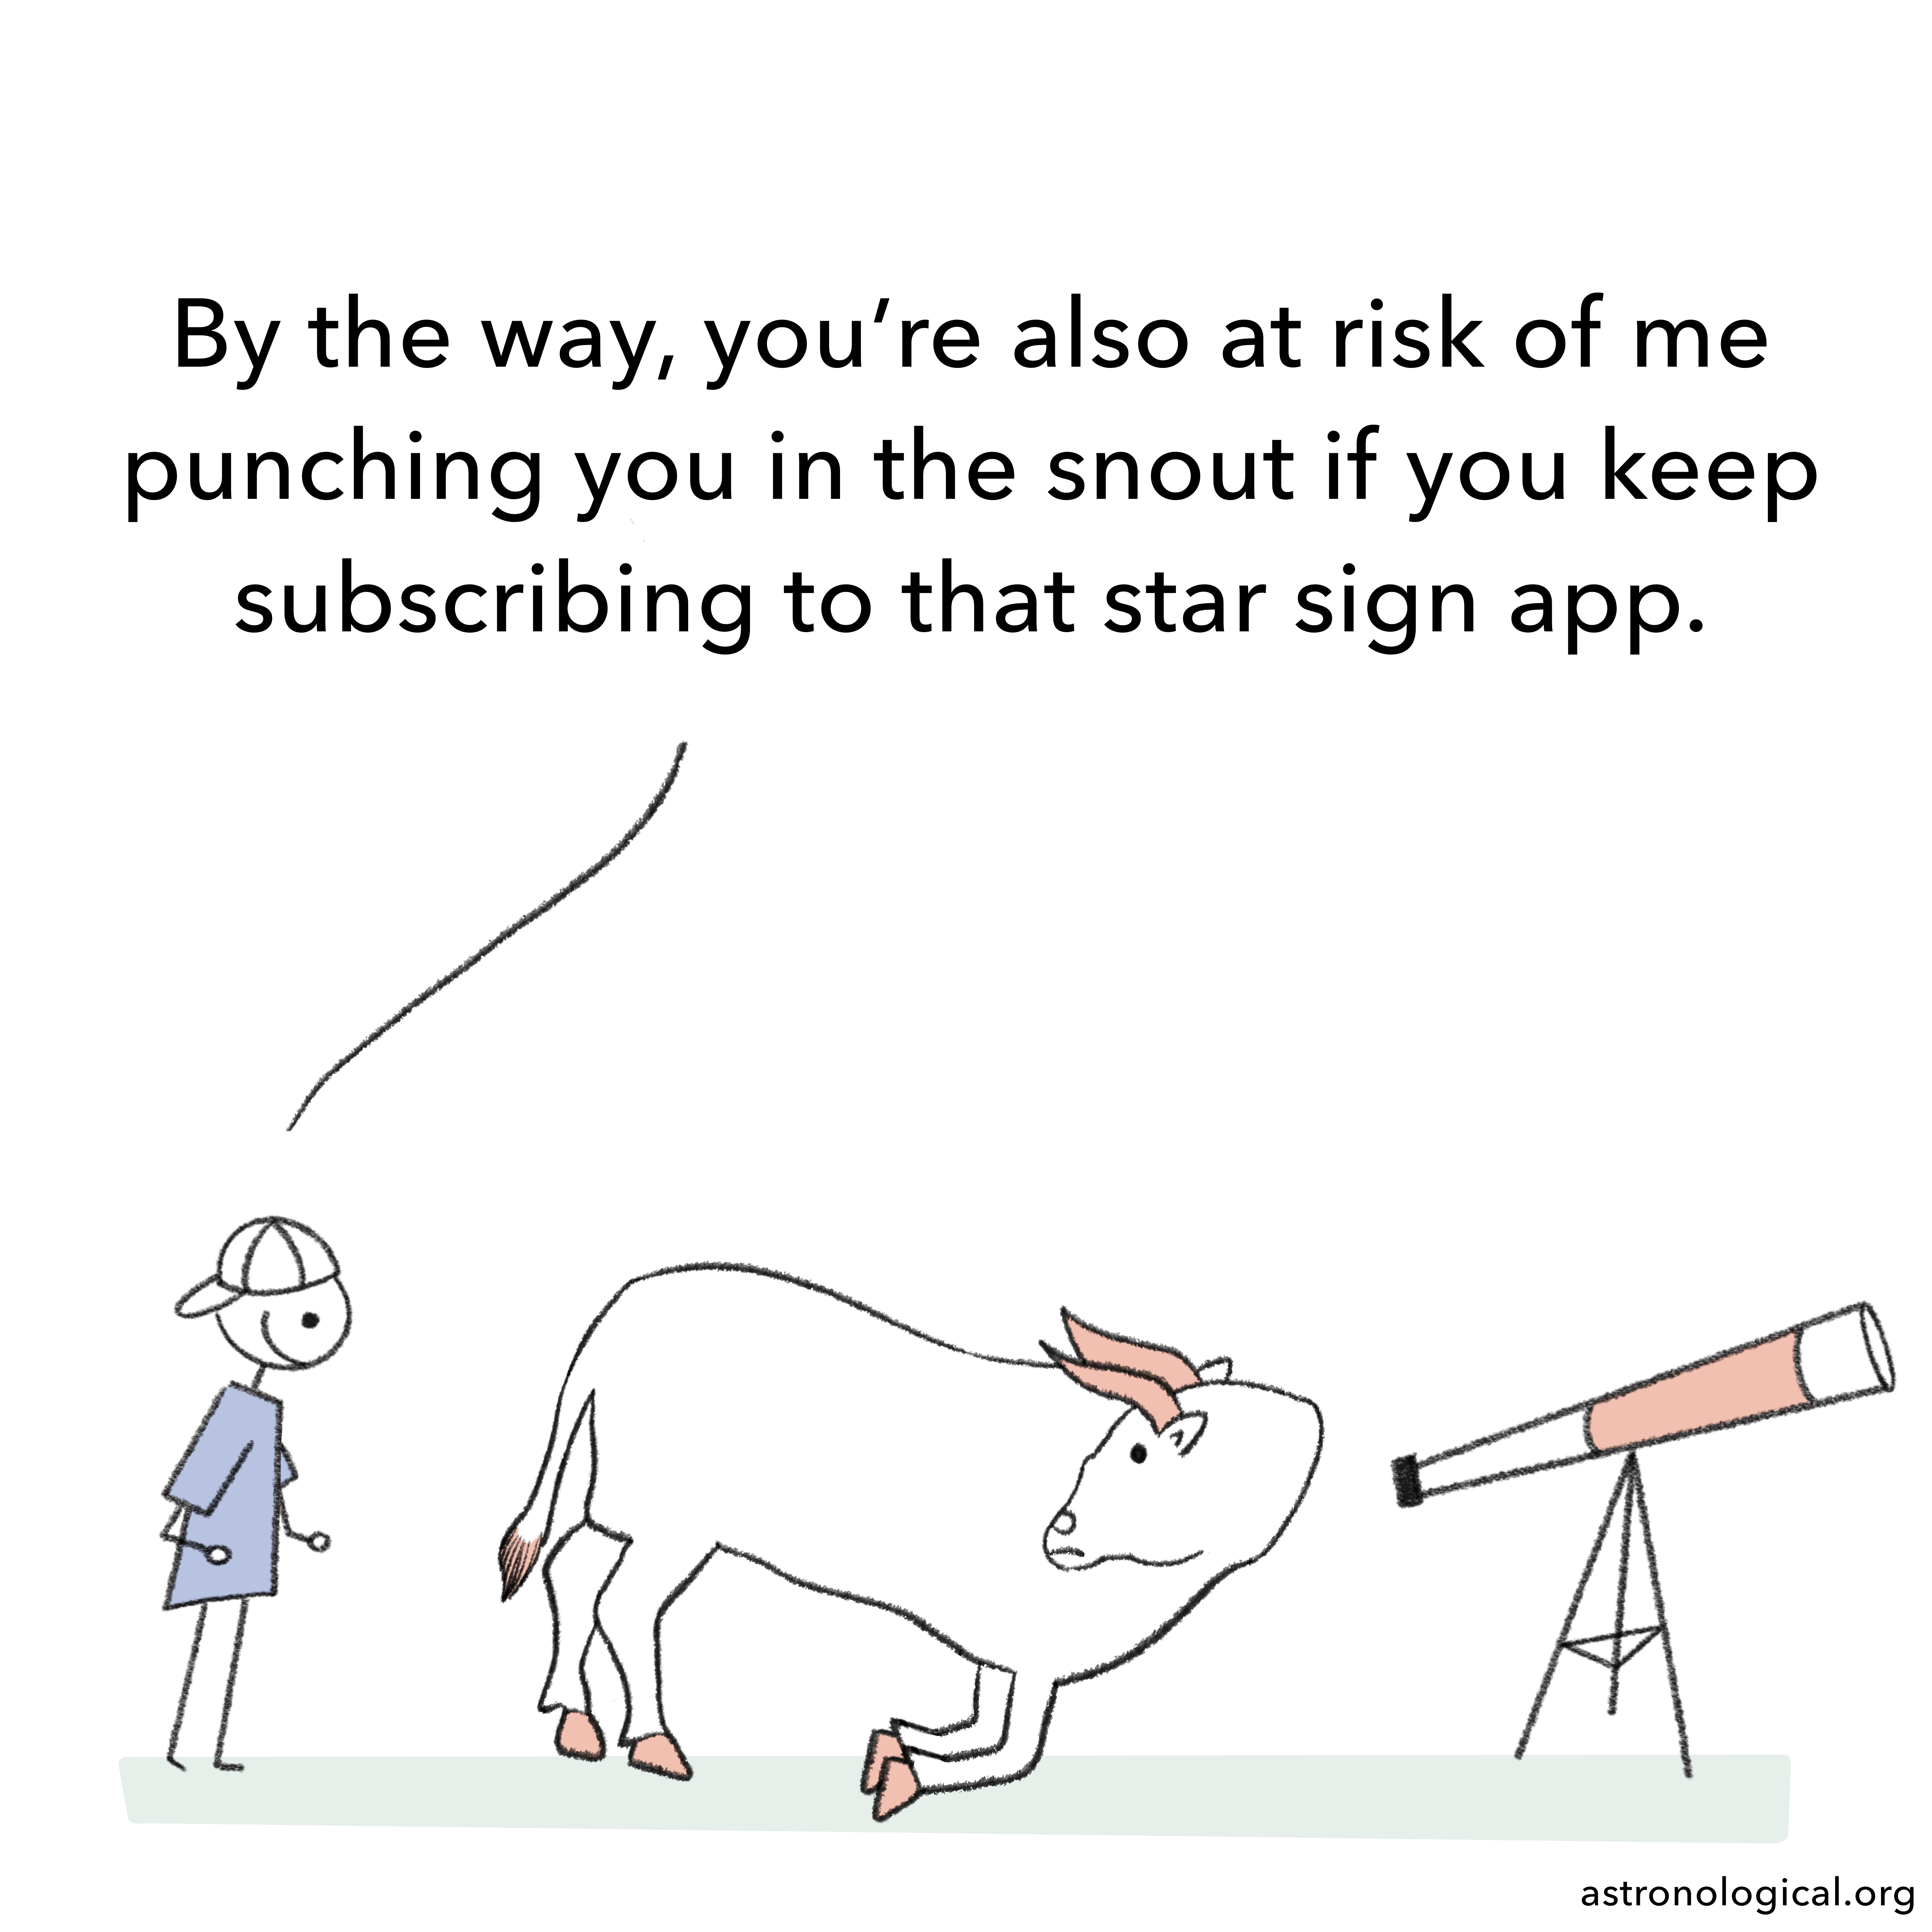 The guy adds: By the way, you're also at risk of me punching you in the snout if you keep subscribing to that star sign app. The bull has turned its face around to look at the guy, surprised.